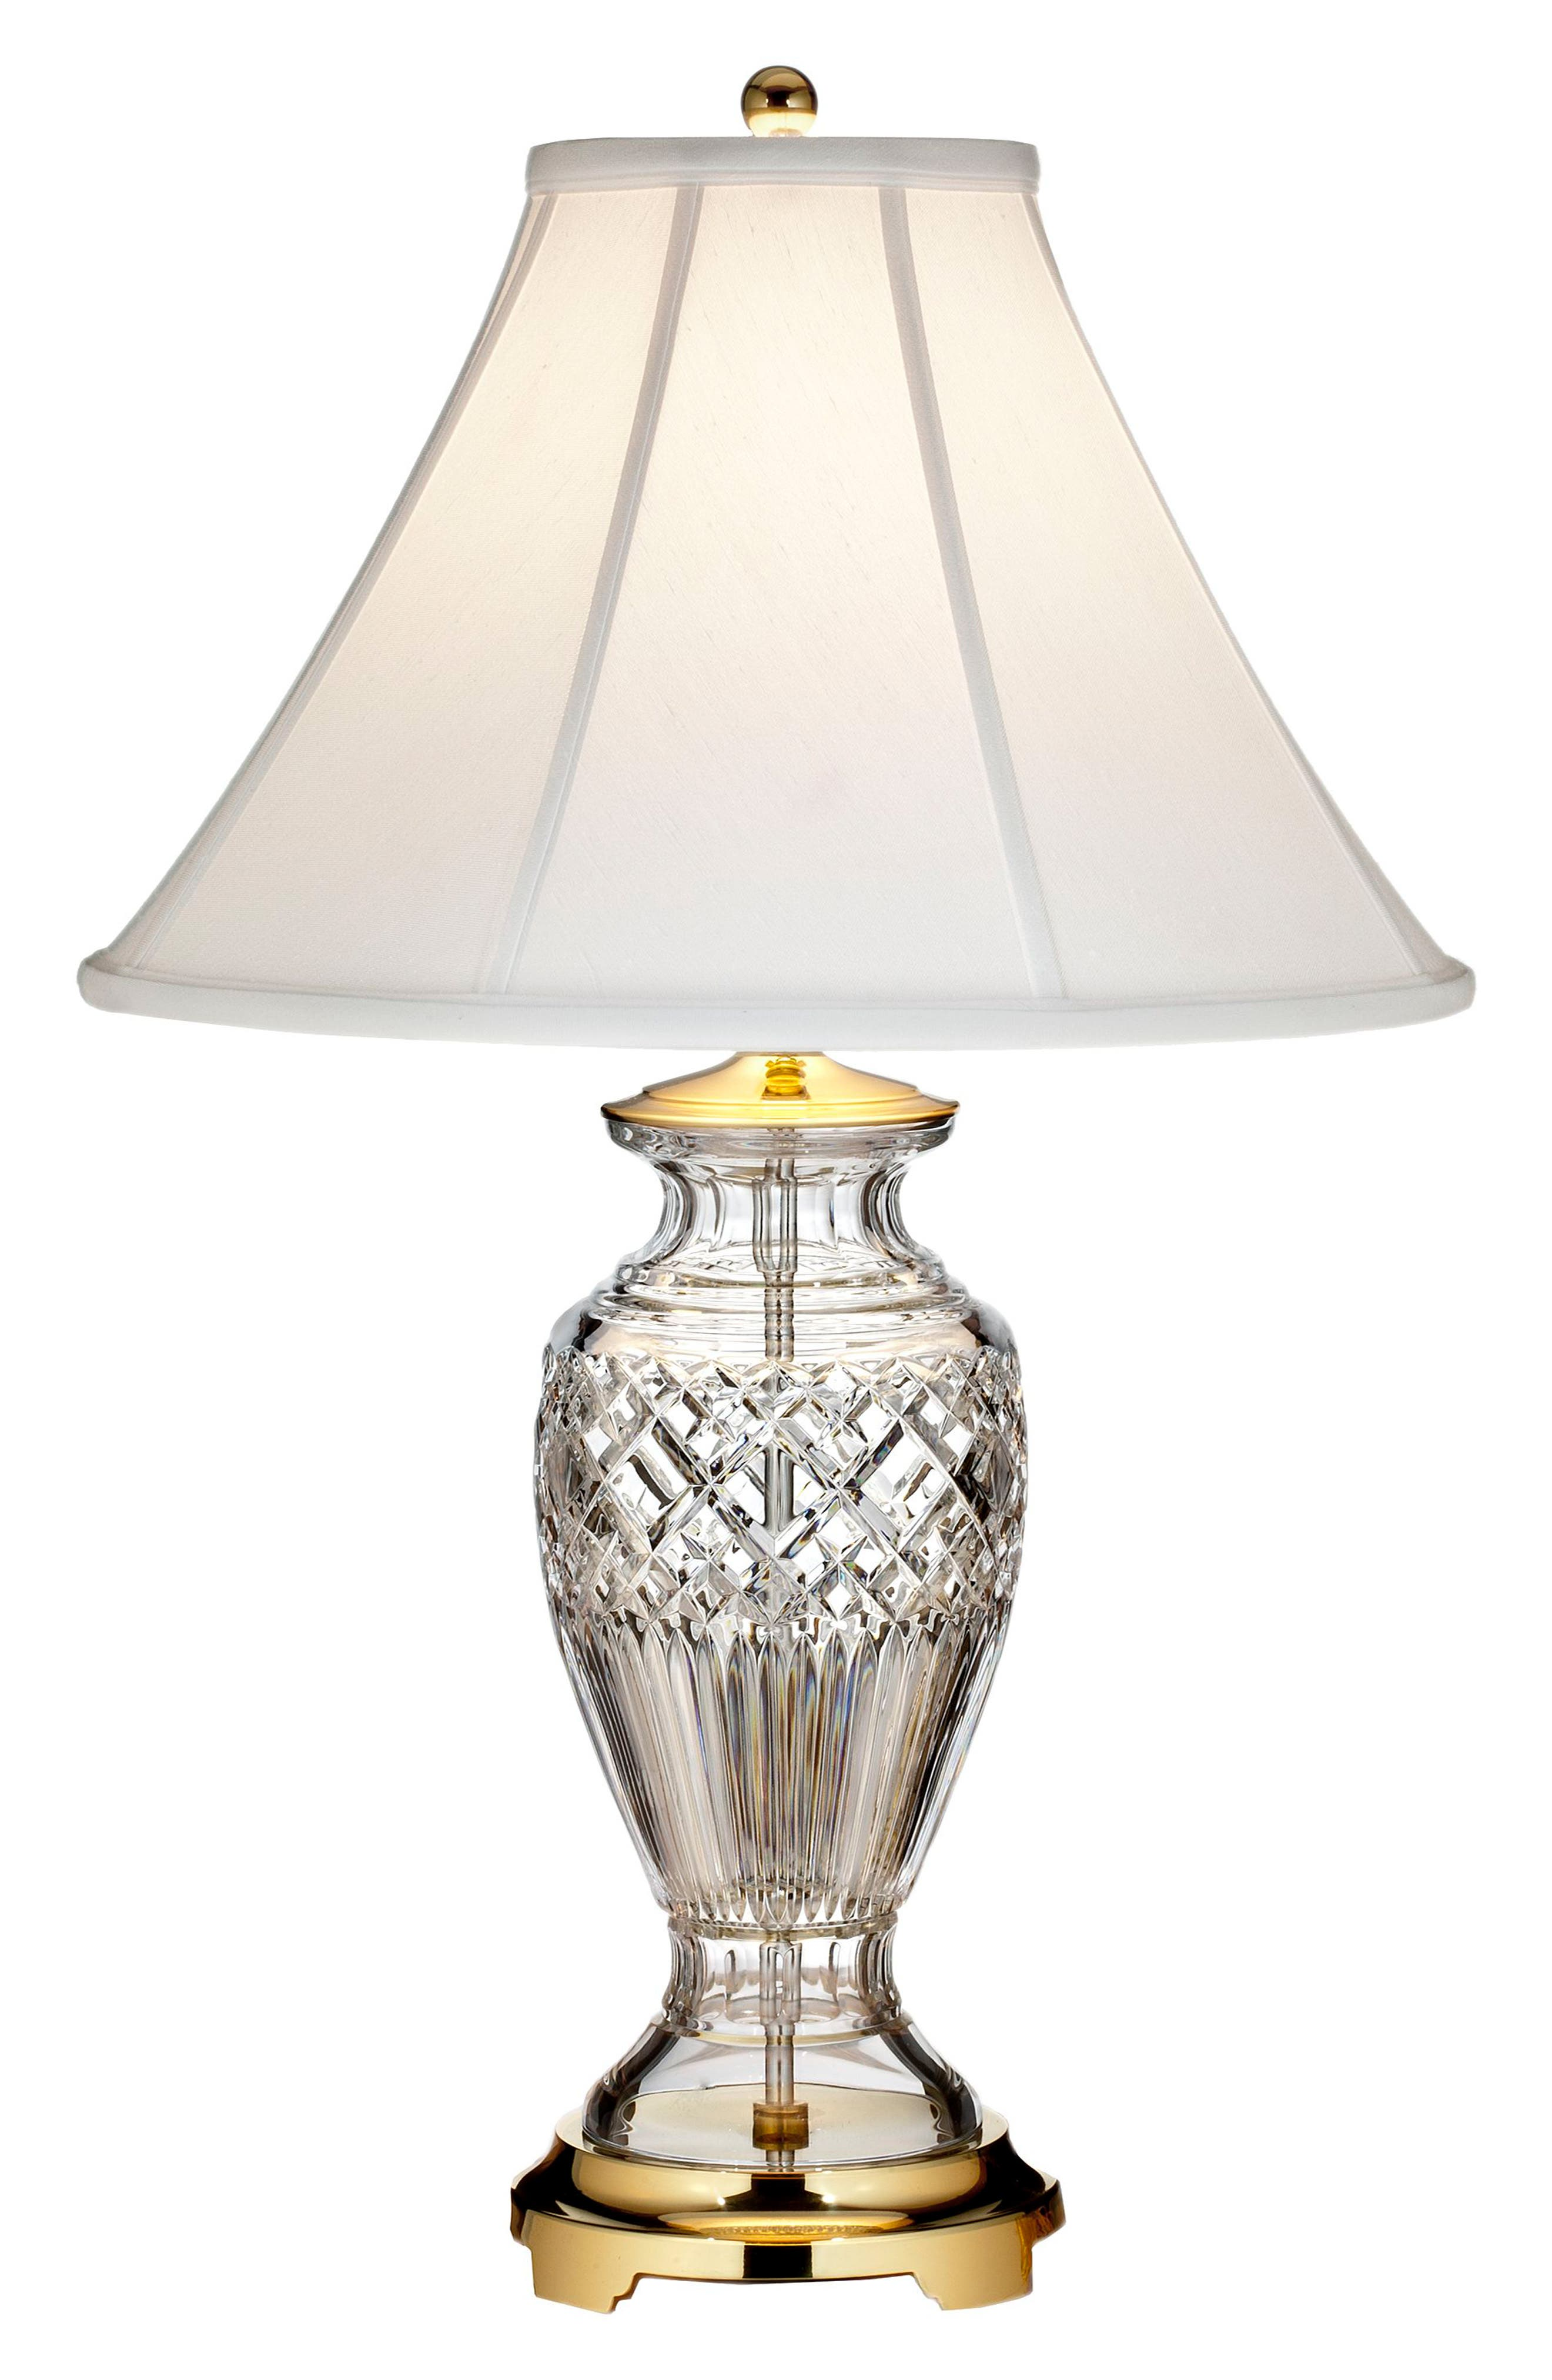 Kilmore Lead Crystal Table Lamp,                             Main thumbnail 1, color,                             100